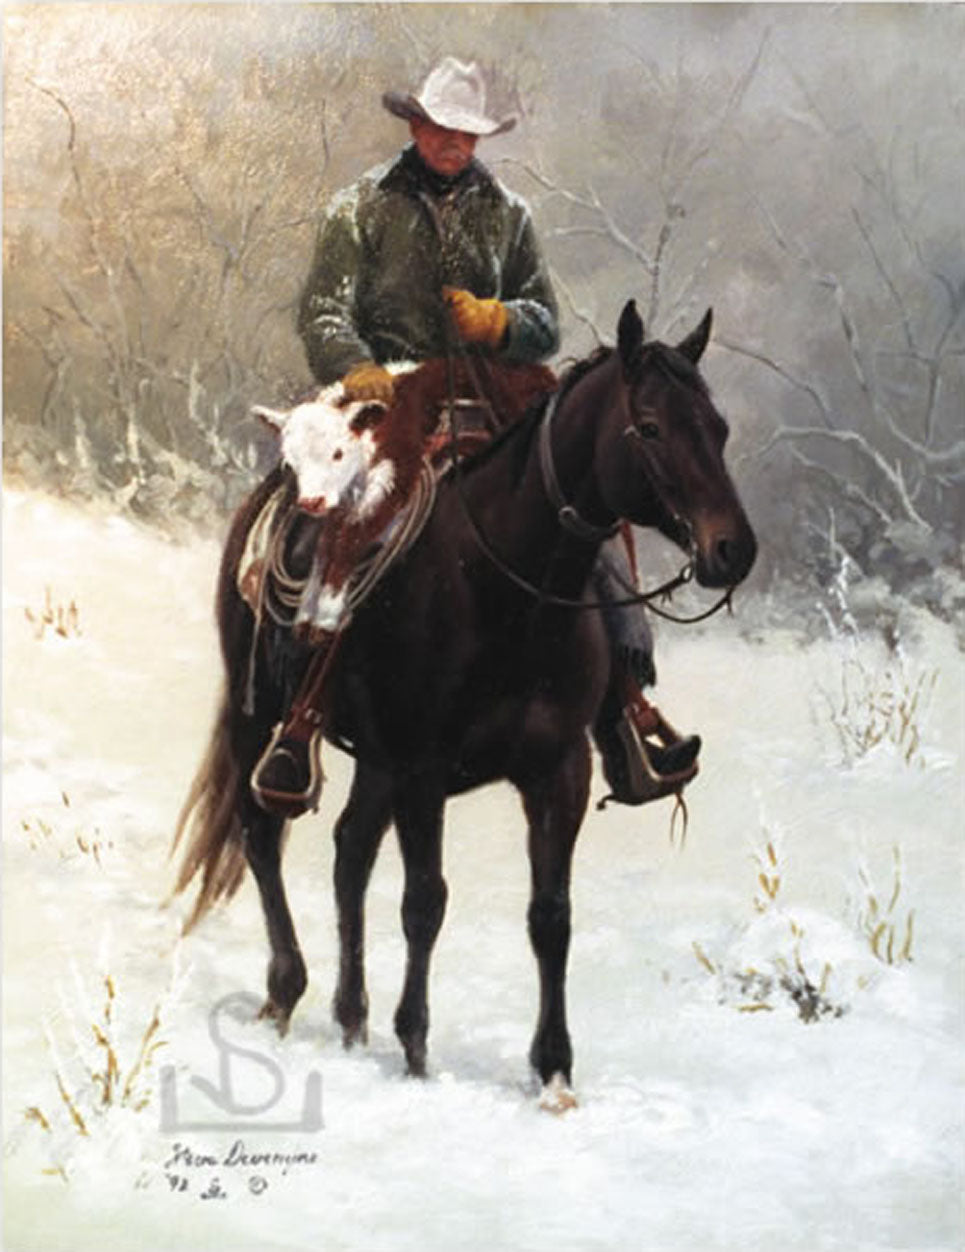 """Rescued"" on the Haythorn Ranch features a cowboy and calf in late winter, early Spring. Painting by Steve Devenyns, one of America's Finest Western Artists of Fine Art, original Paintings of Ranching, Wildlife and Cowboy art. Featured on the cover of several Western lifestyle magazines and features."